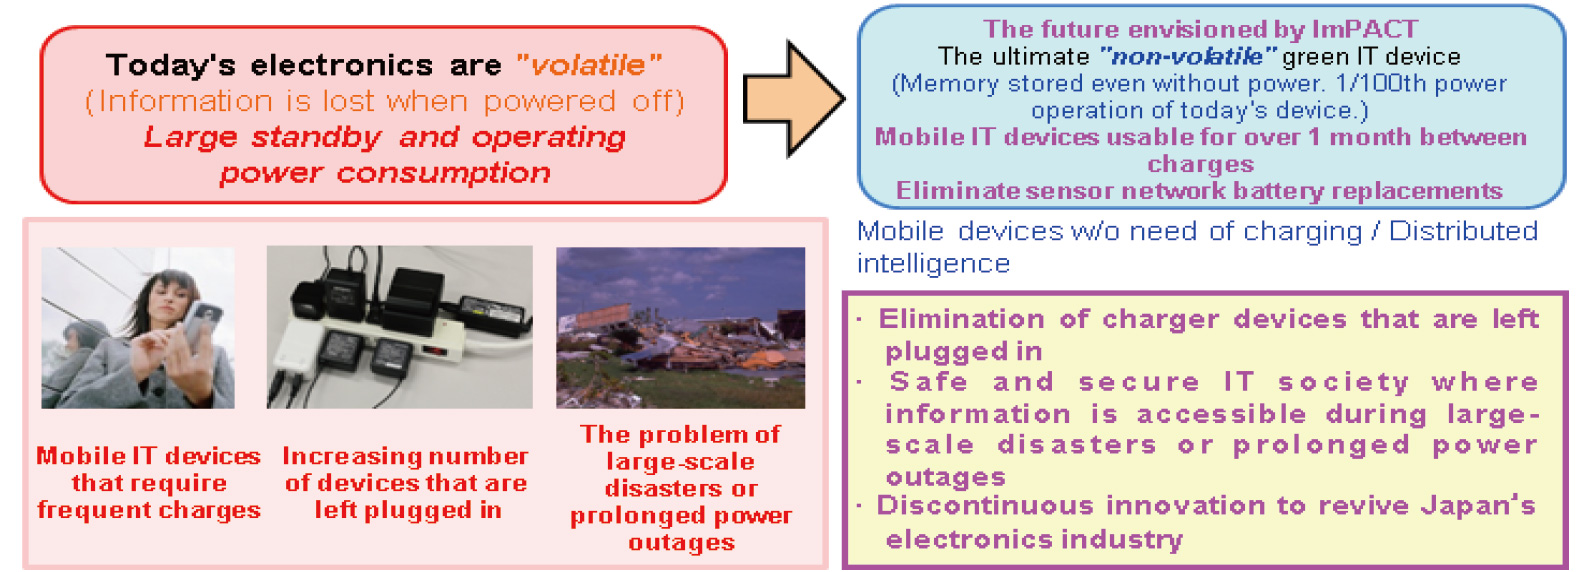 impulsing paradigm change through disruptive technologies program realize a safe and secure it society where information is accessible during largescale disasters and prolonged power outages through a distributed